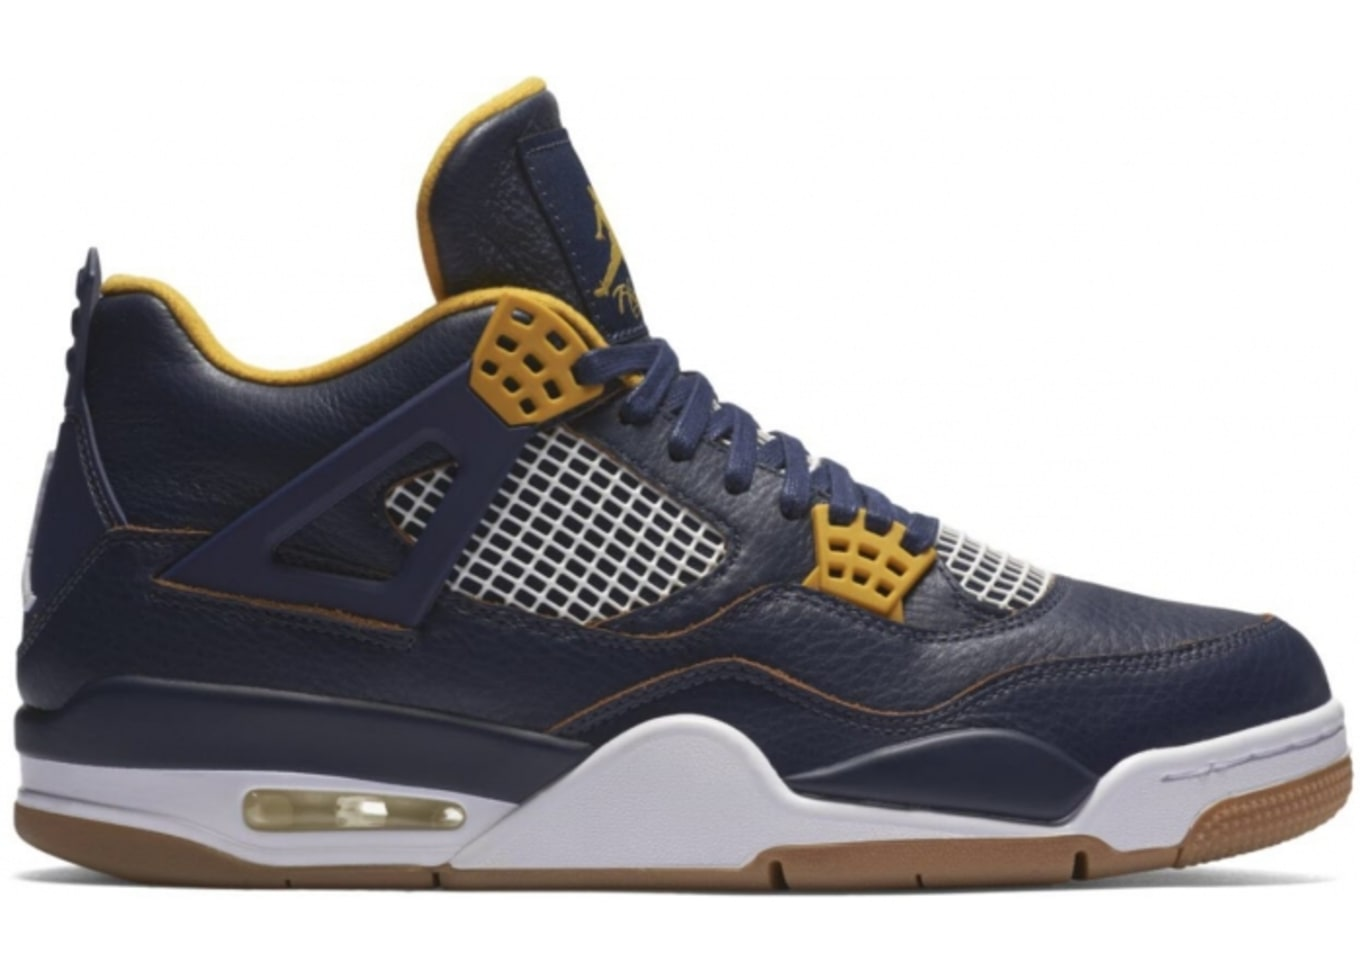 fee88e334b58a2 Air Jordan 4 Retro